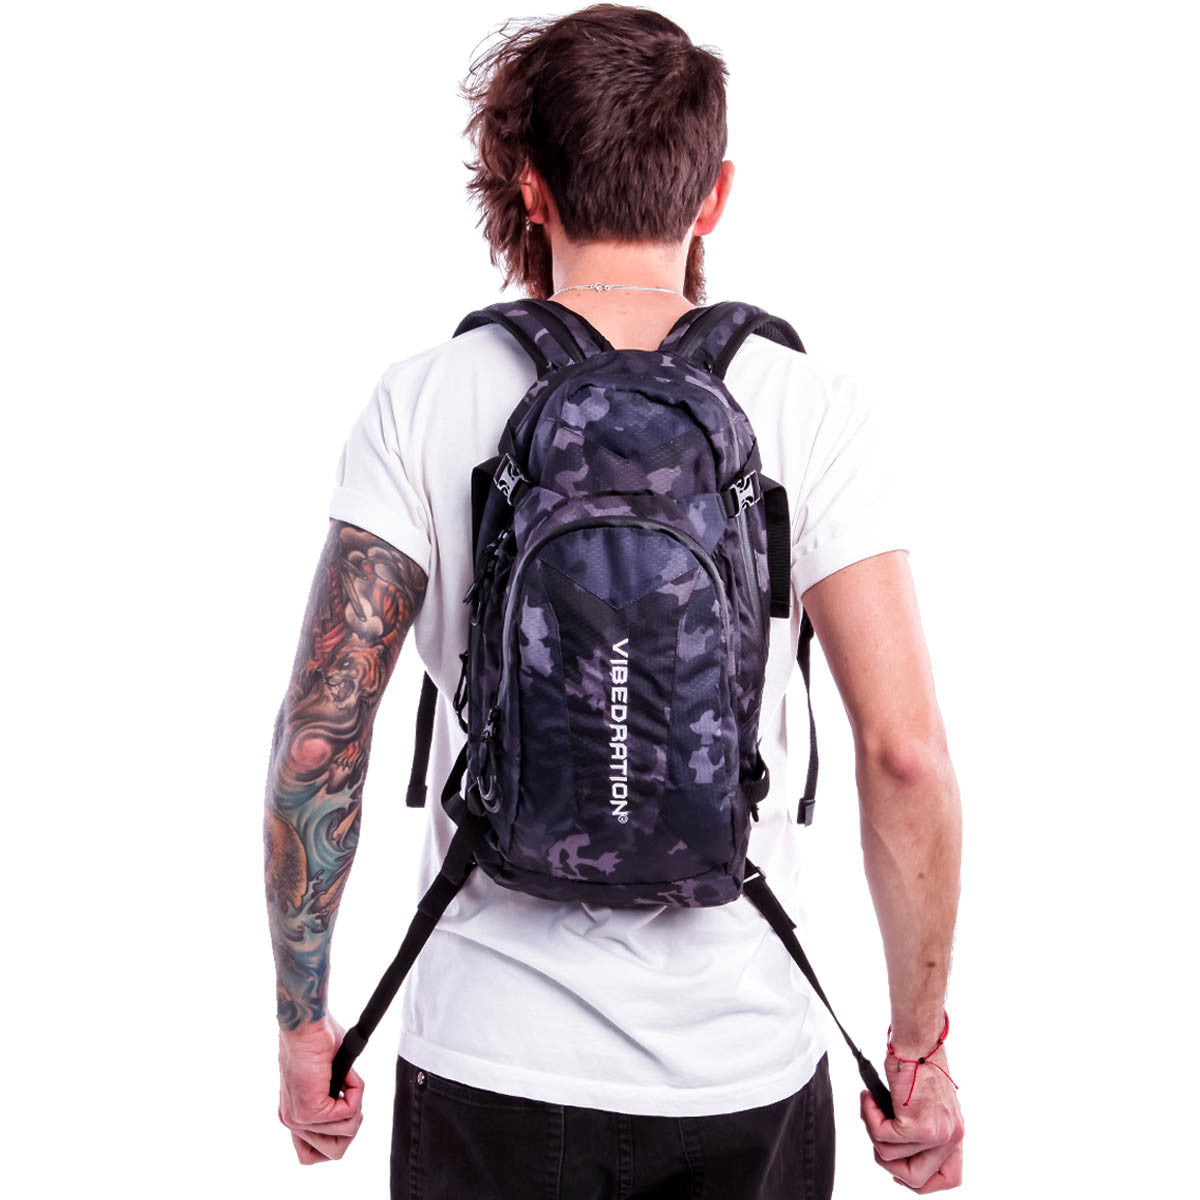 Male wearing Camo Black hydration pack